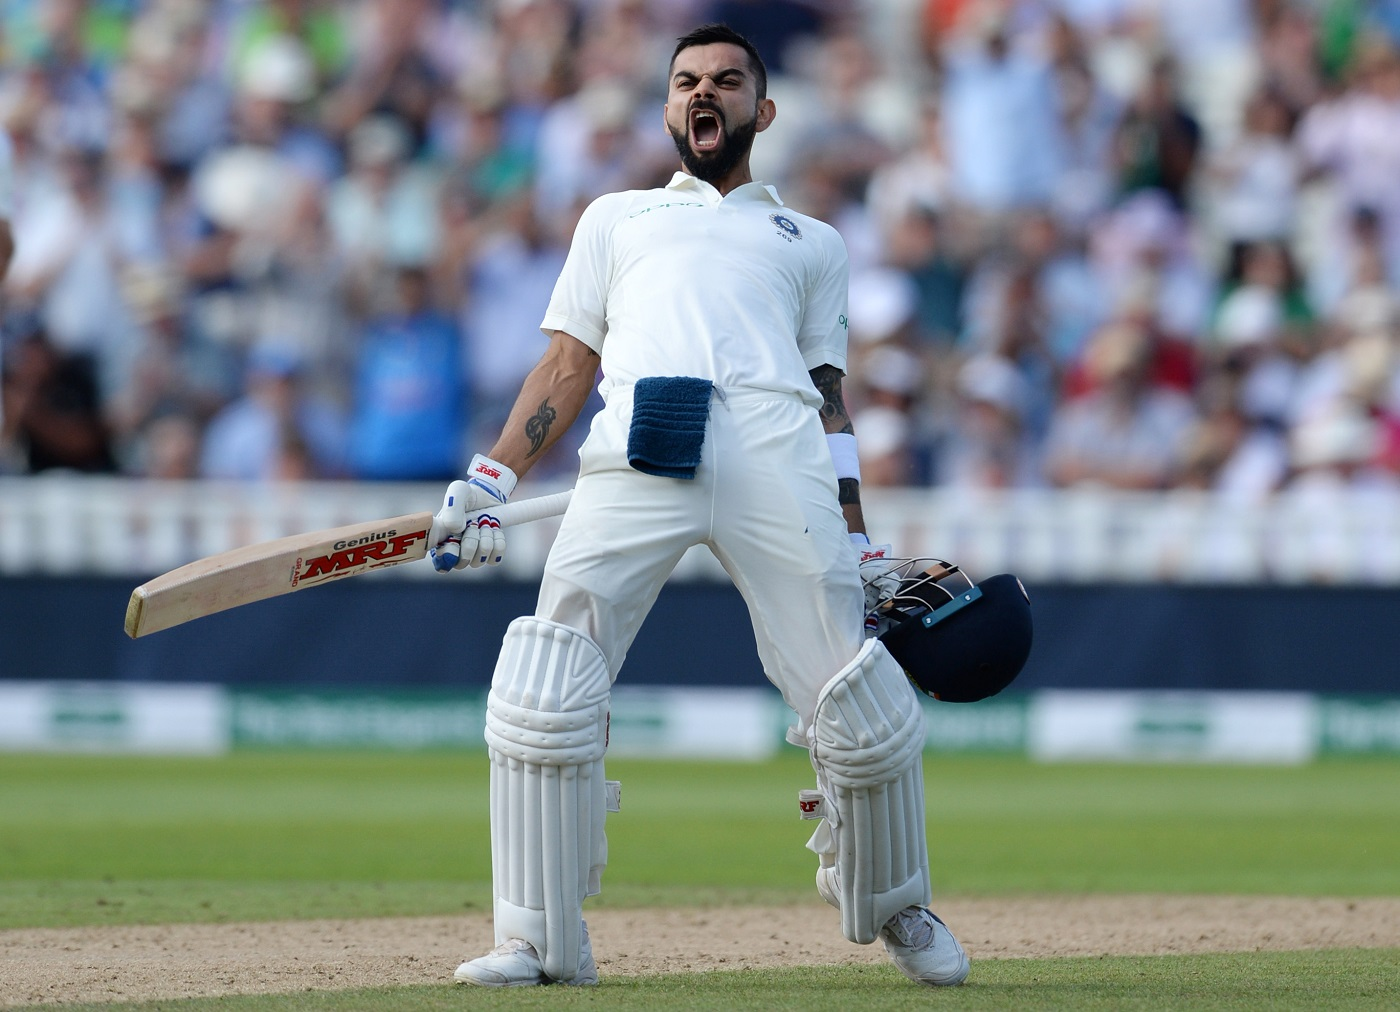 England camp reacts to Virat Kohli's mic drop celebration